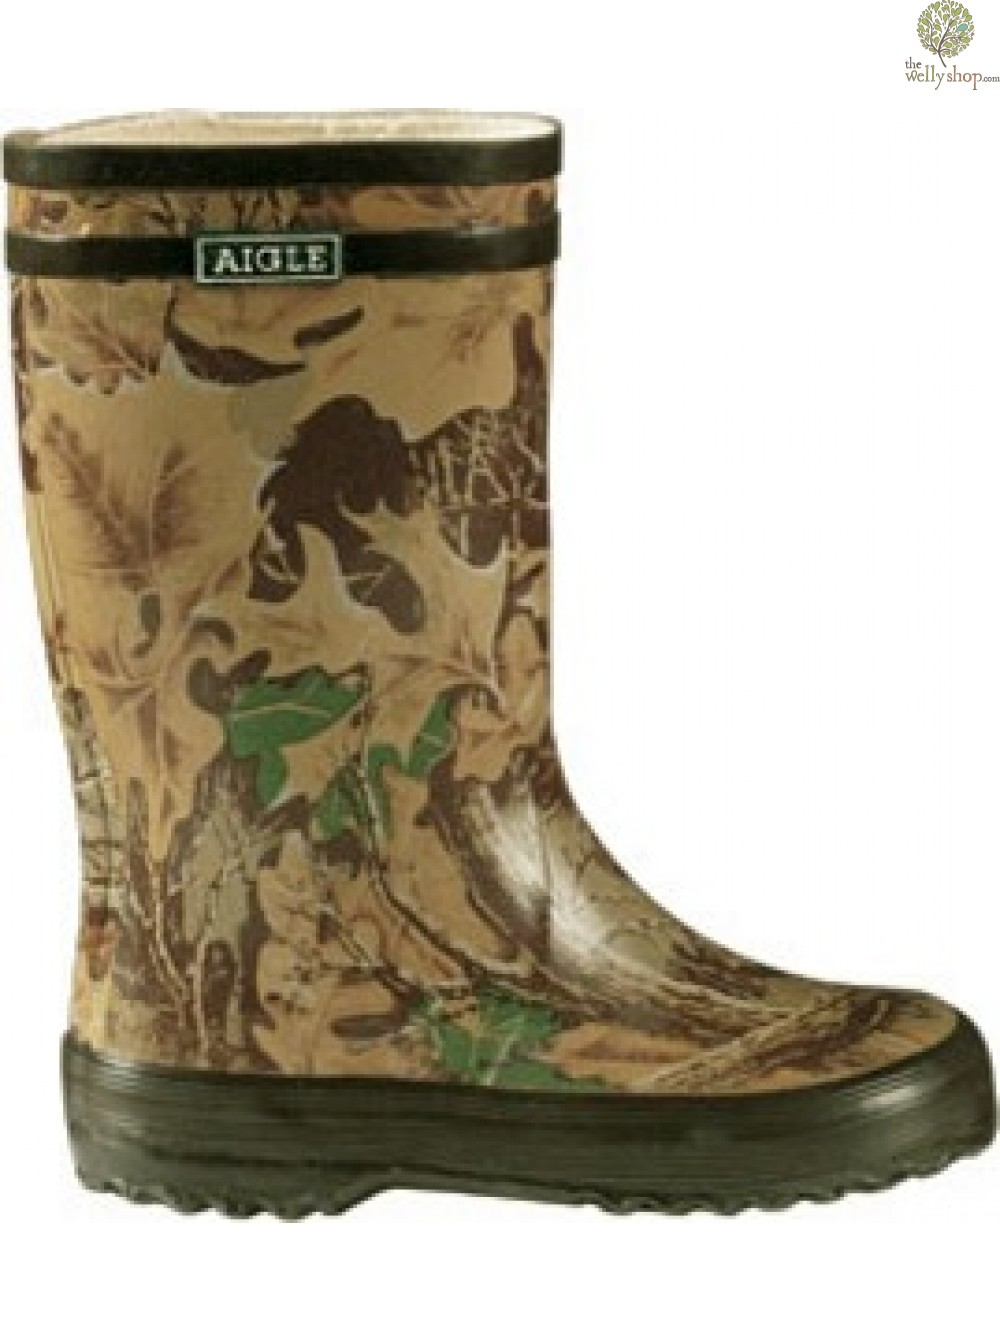 68a22894b ... Aigle Lollypop Childrens Wellies - Camouflage. Aigle ...